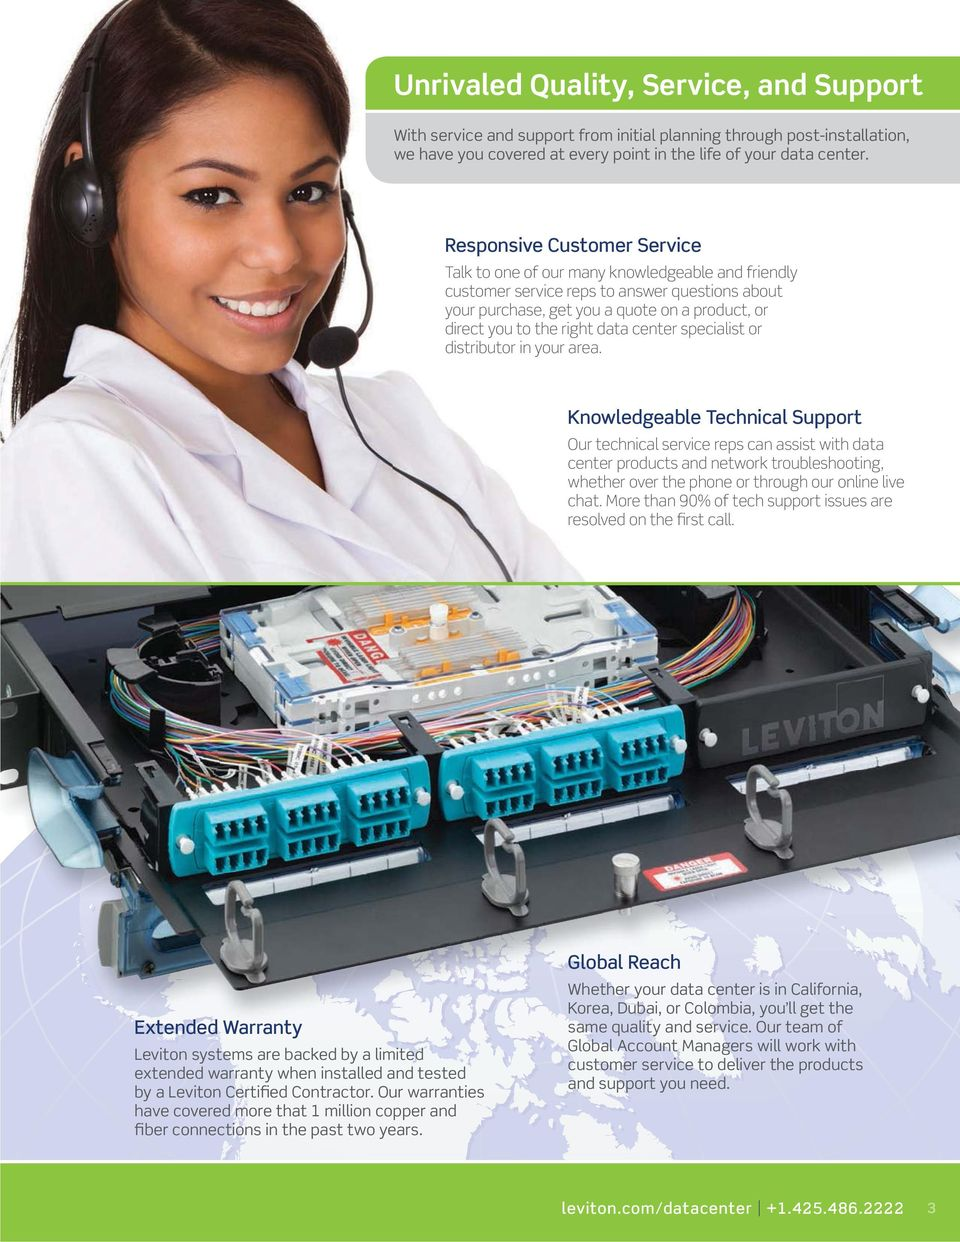 data center specialist or distributor in your area.